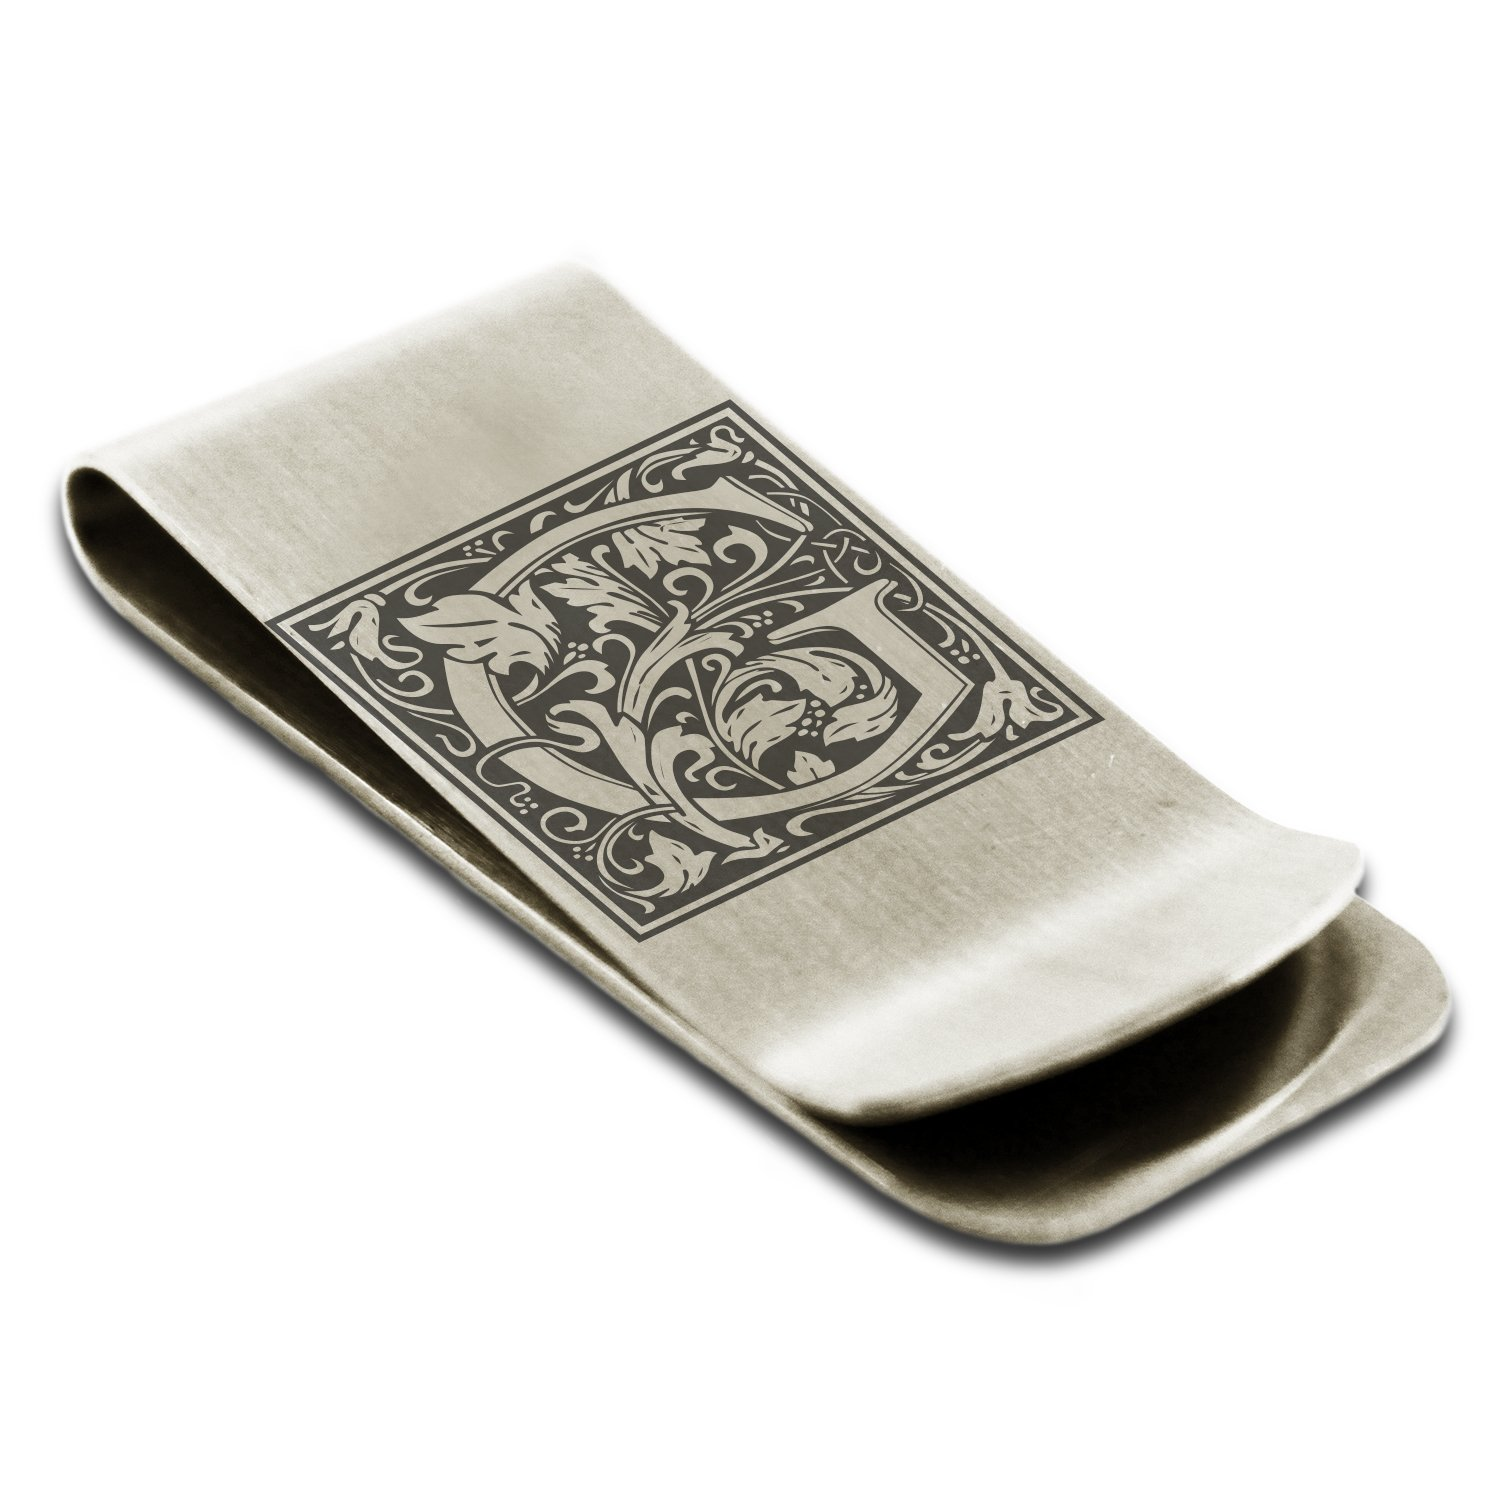 Stainless Steel Letter G Initial Floral Box Monogram Engraved Money Clip Credit Card Holder